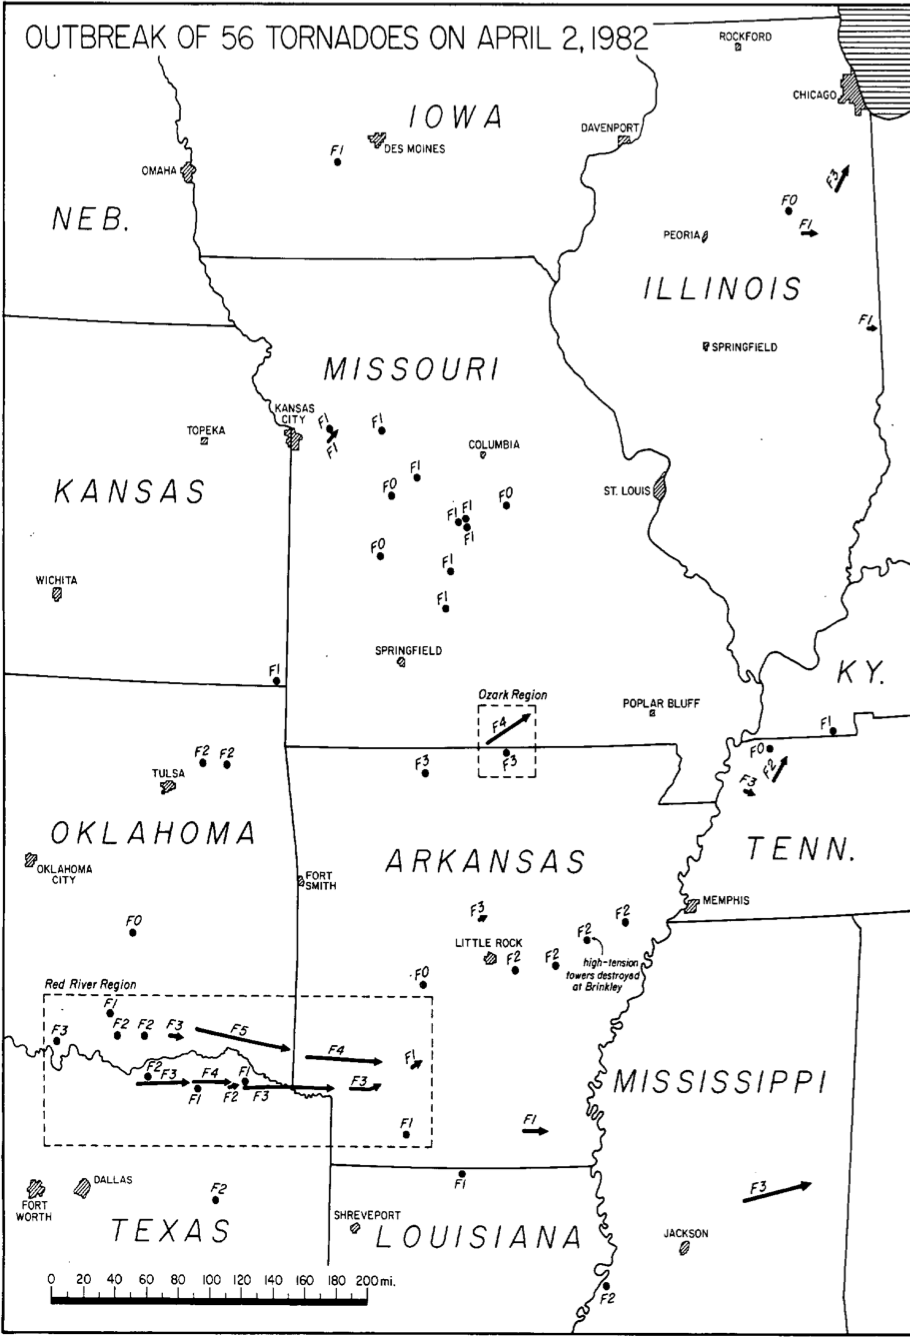 The April 2, 1982 Tornado Outbreak – Overview